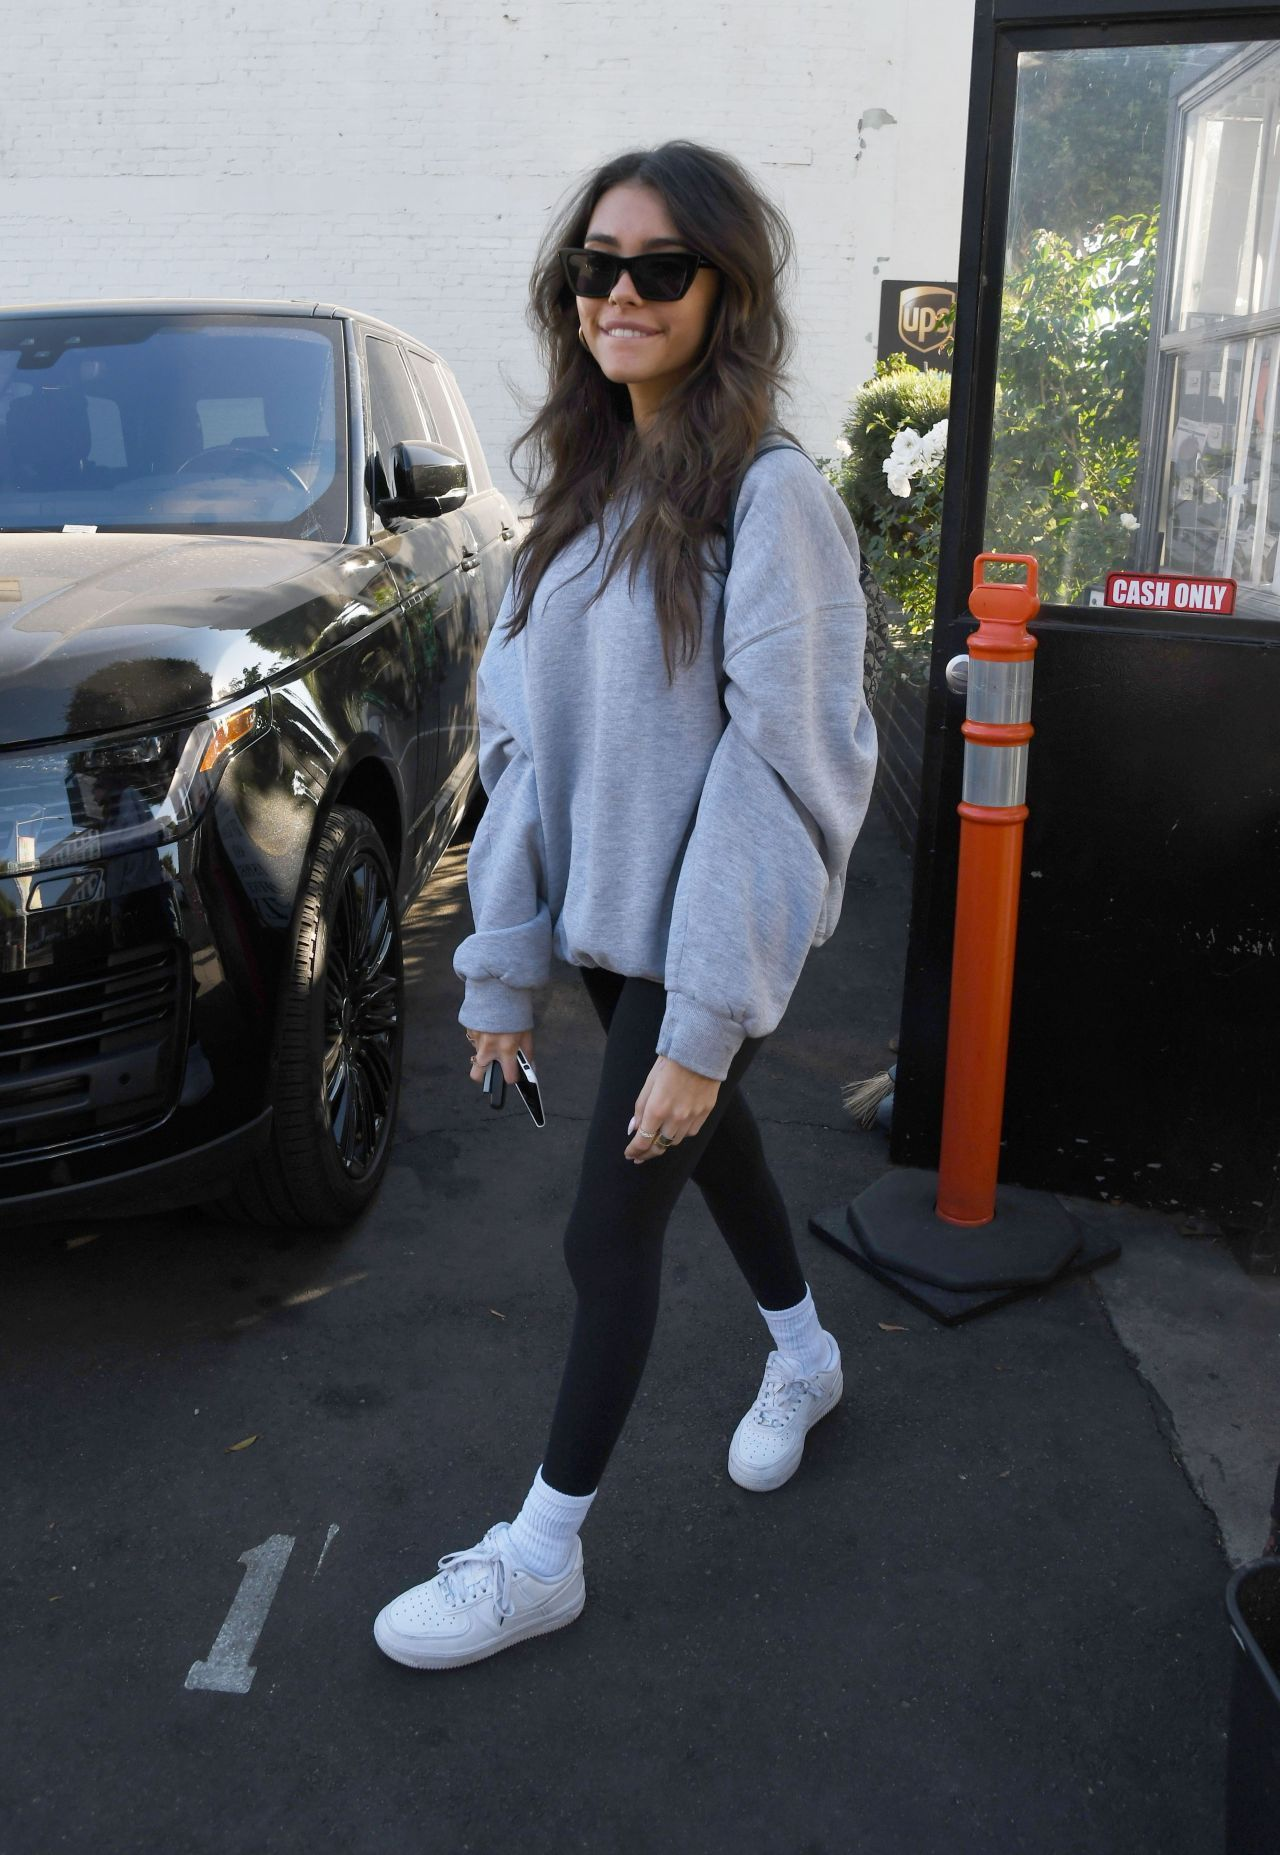 Madison Beer Exiting Xiv Karats Jewelry Store In Los Angeles 11 20 2019 Outfits With Leggings Beer Outfit Madison Beer Outfits [ 1855 x 1280 Pixel ]